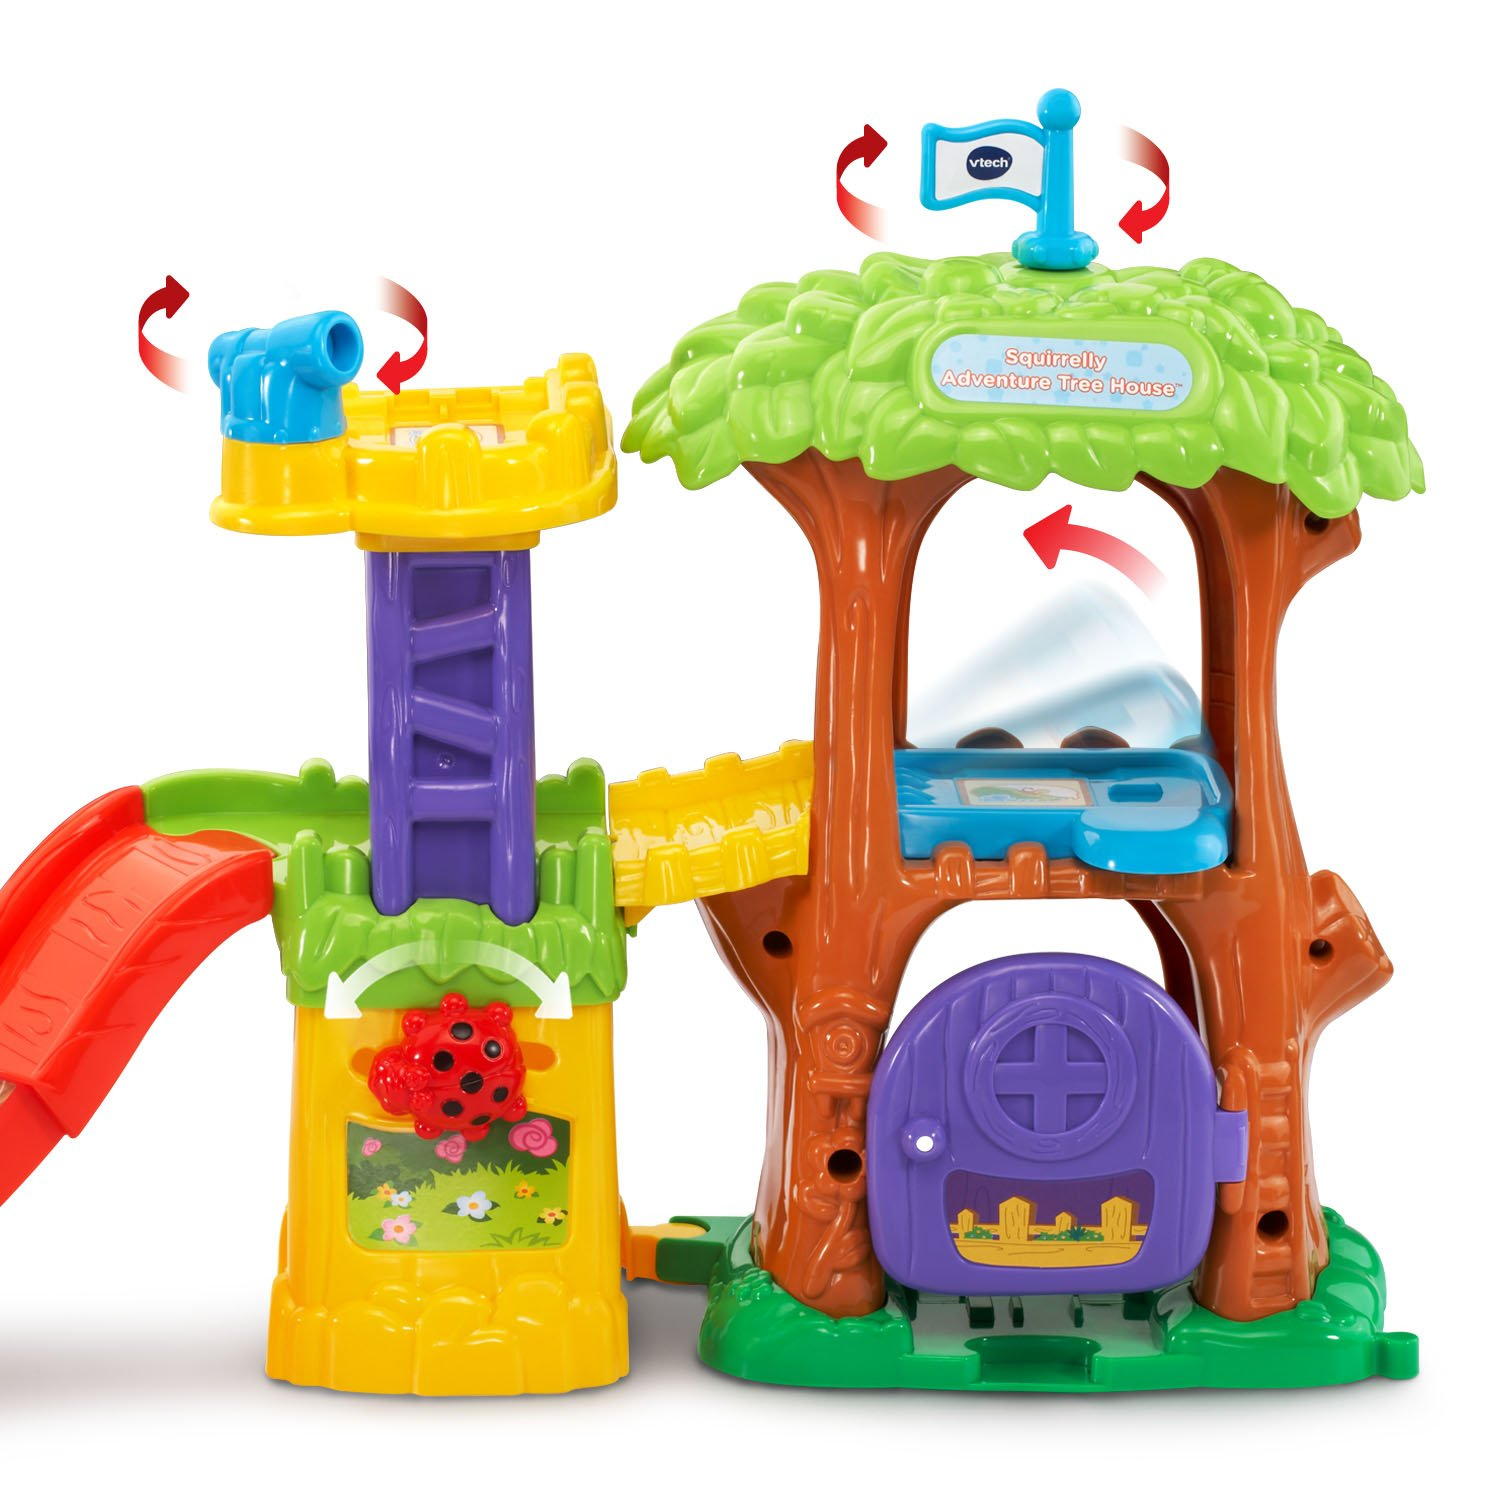 Smart Animals Squirrelly Adventure Tree House Playset Amazonca Toys &